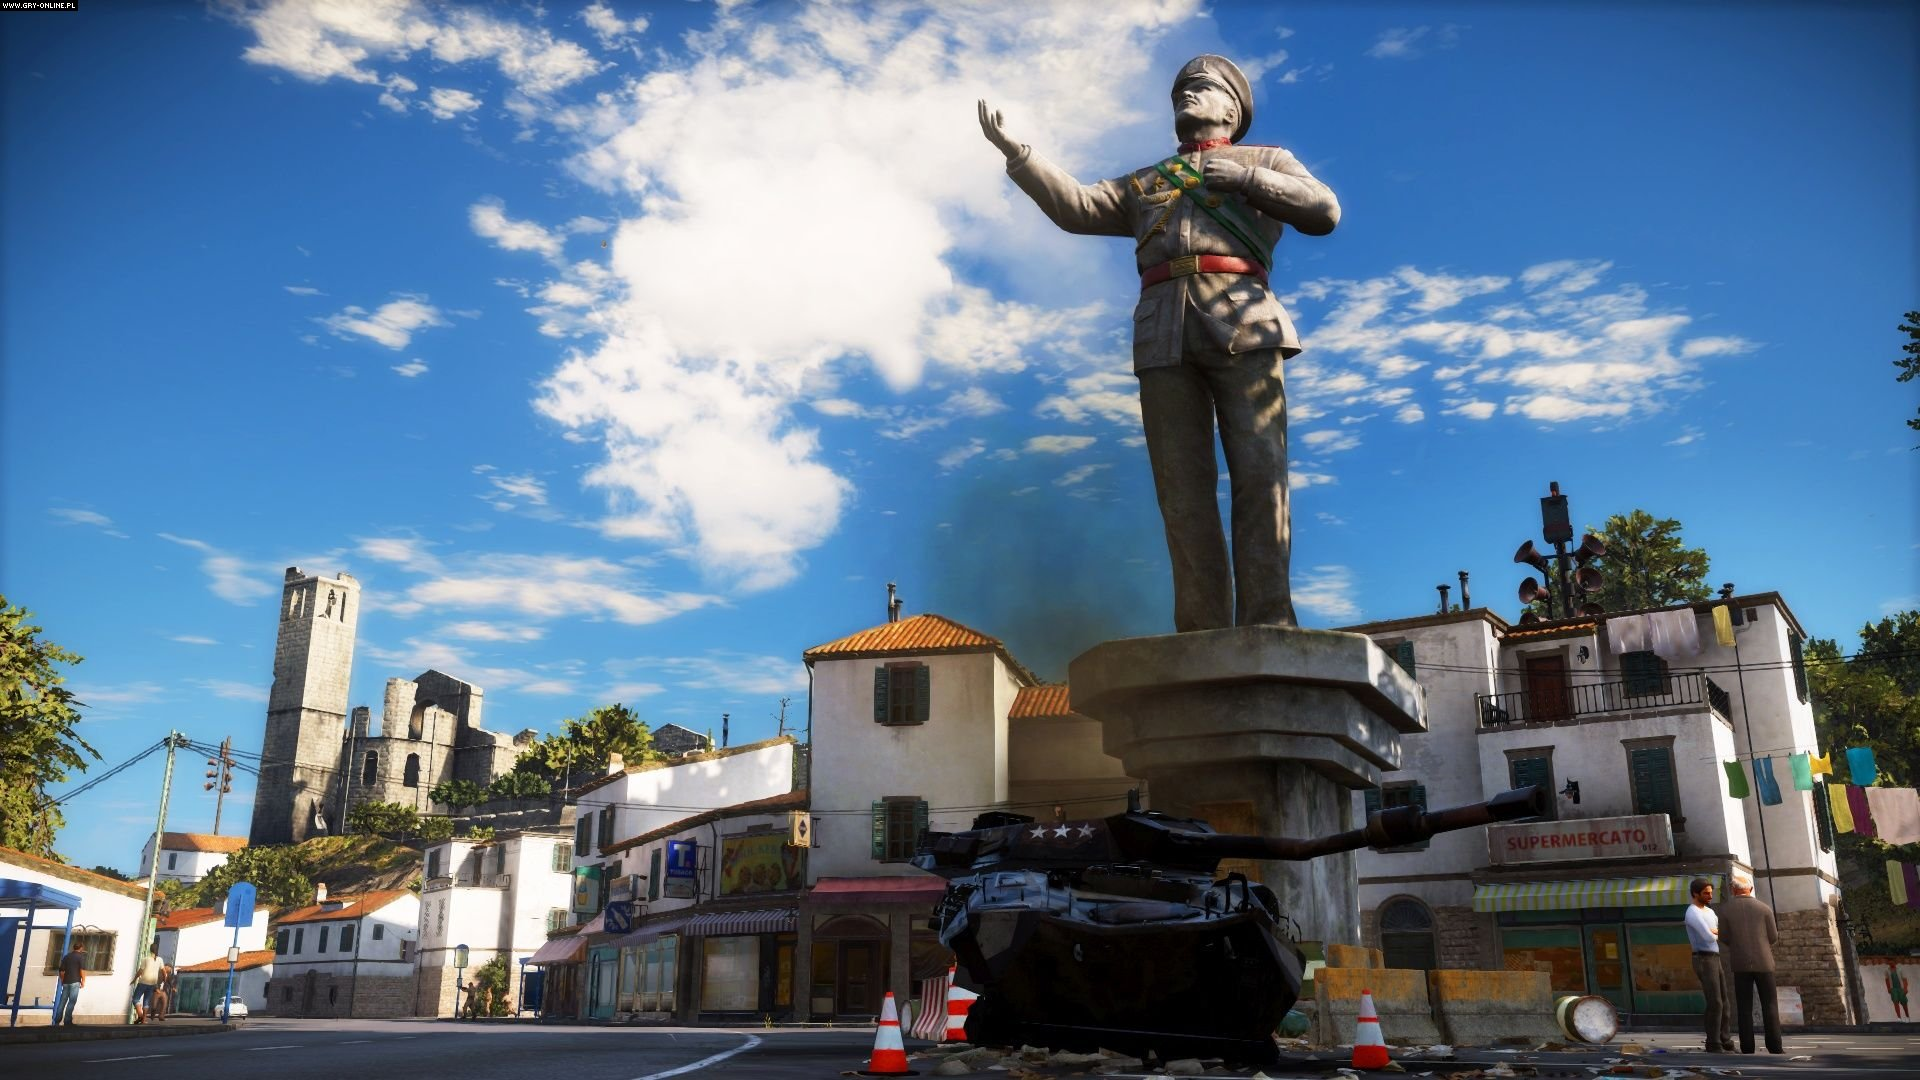 Just Cause 3 PC, XONE, PS4 Games Image 49/90, Avalanche Studios, Square-Enix / Eidos